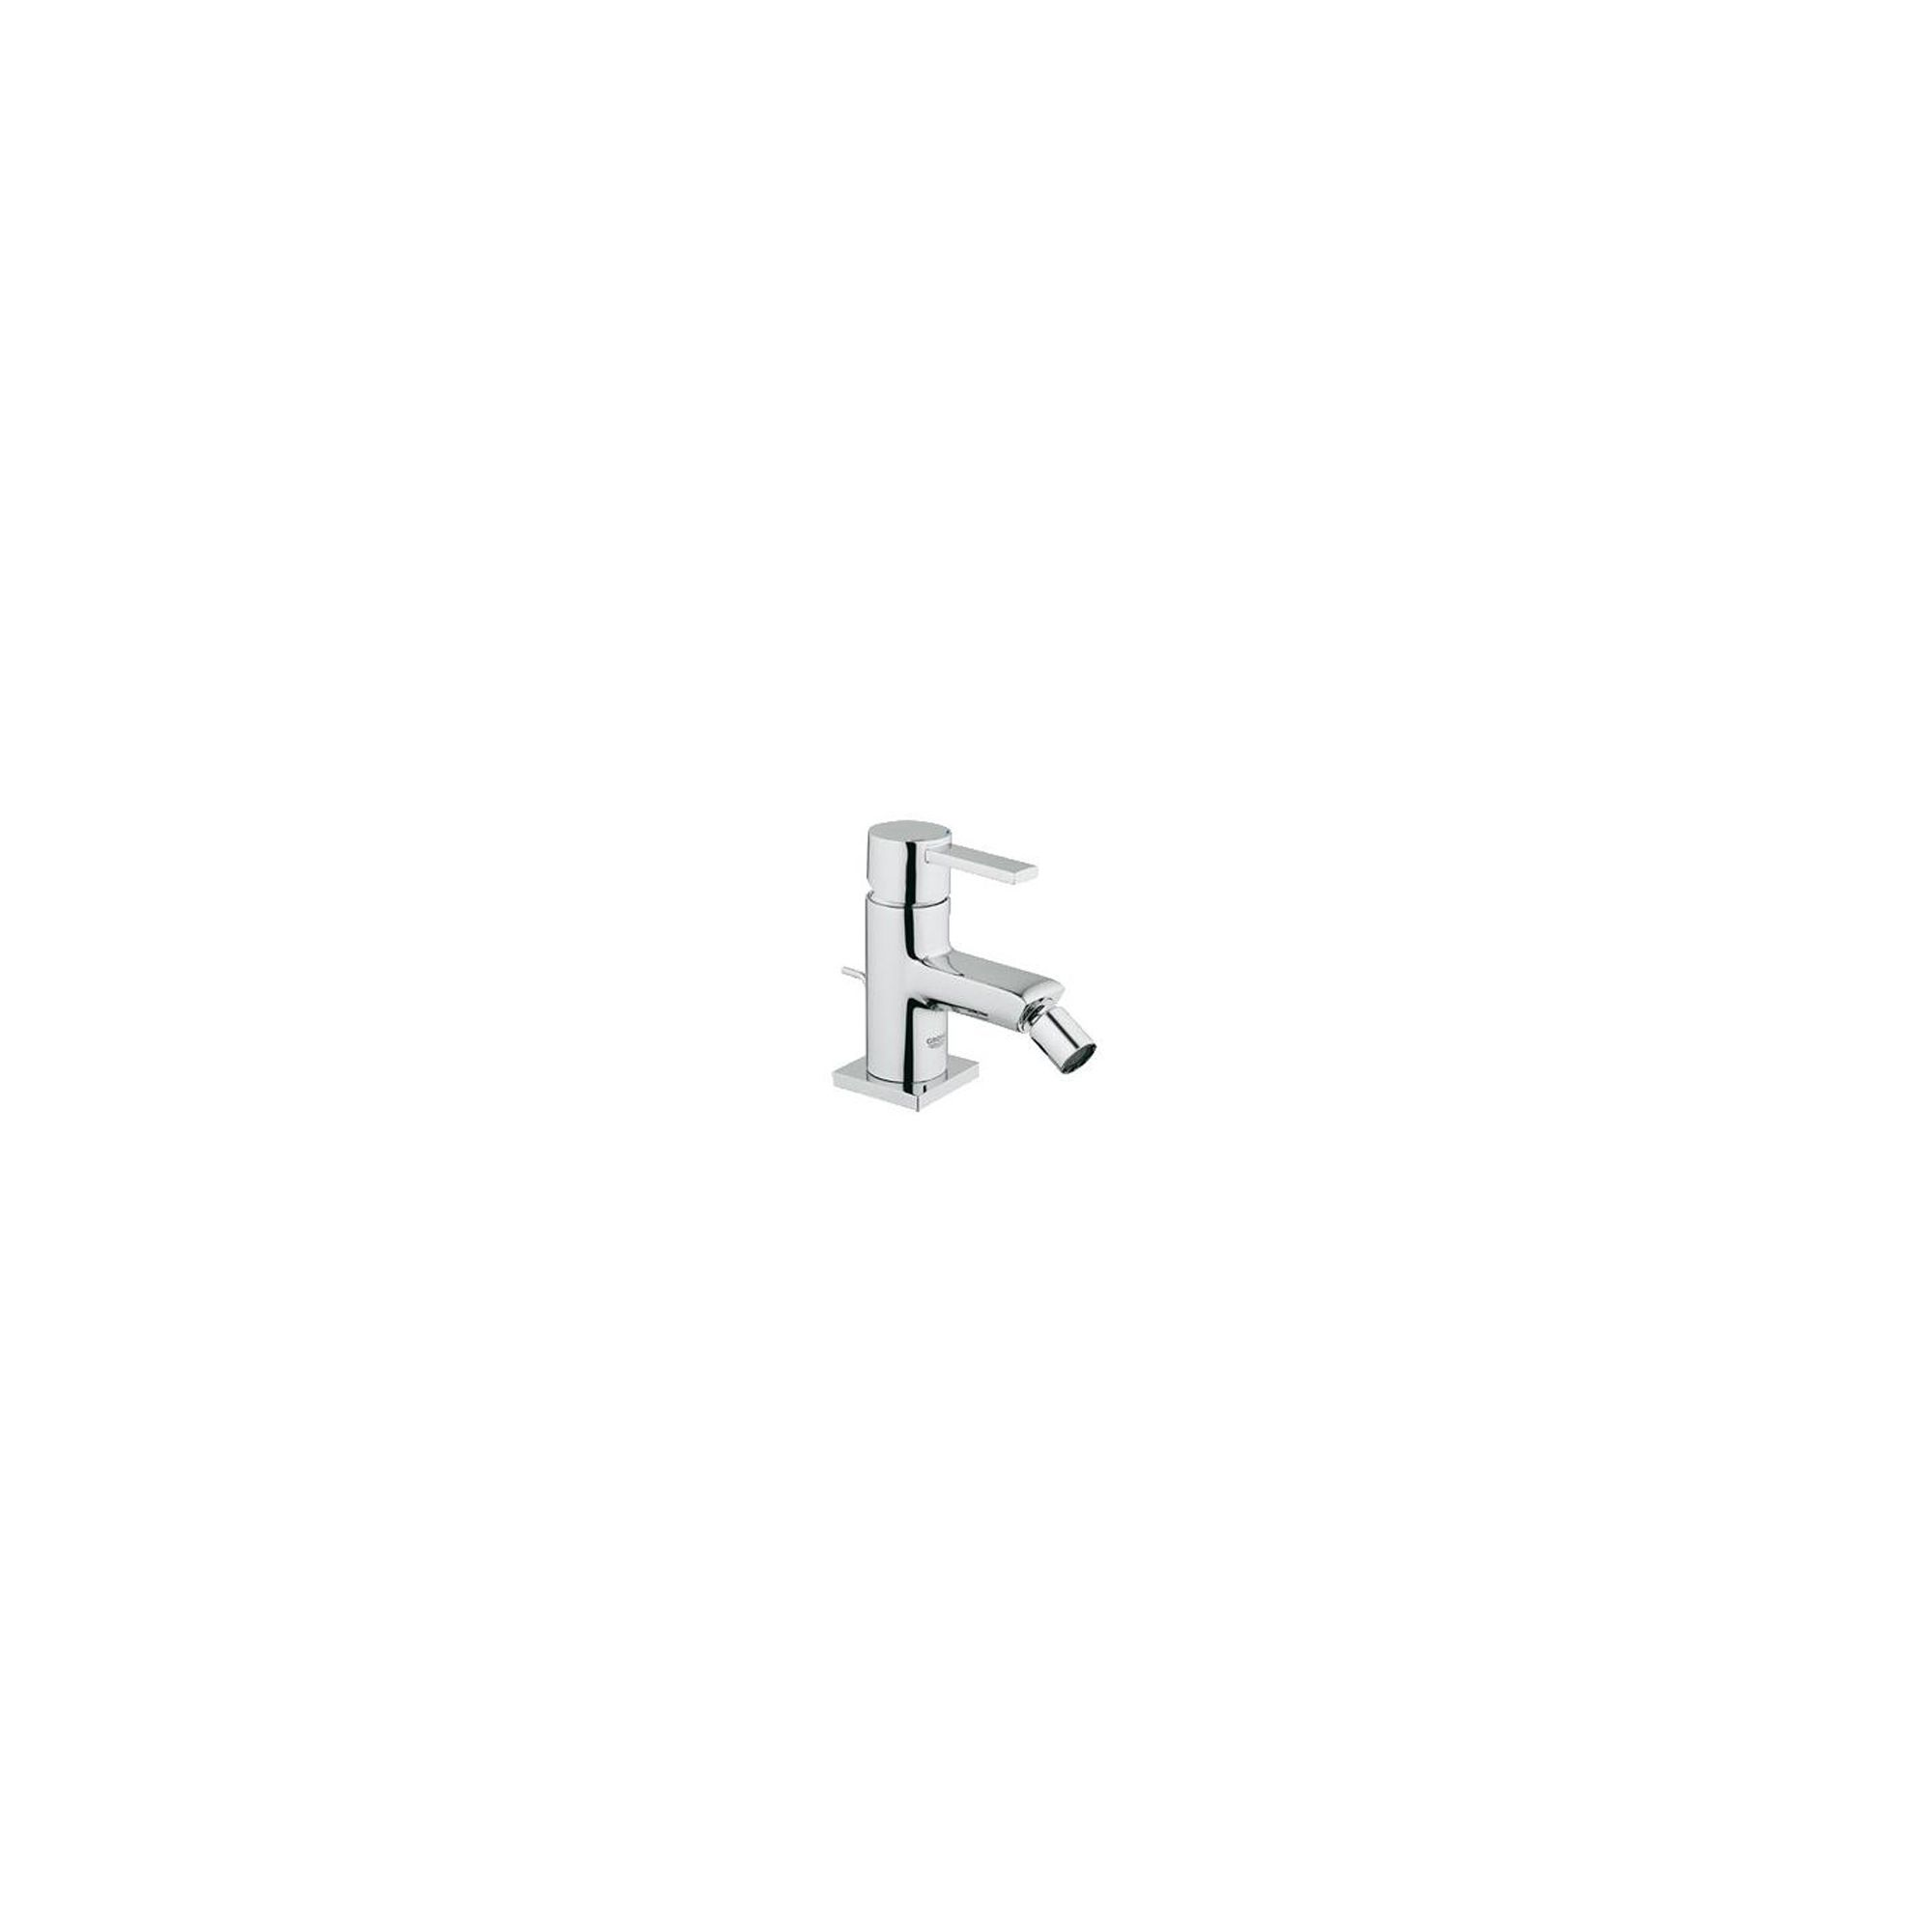 Grohe Allure Long 3-Hole Basin Mixer Tap, Cross Handles, Wall Mounted, Chrome at Tesco Direct